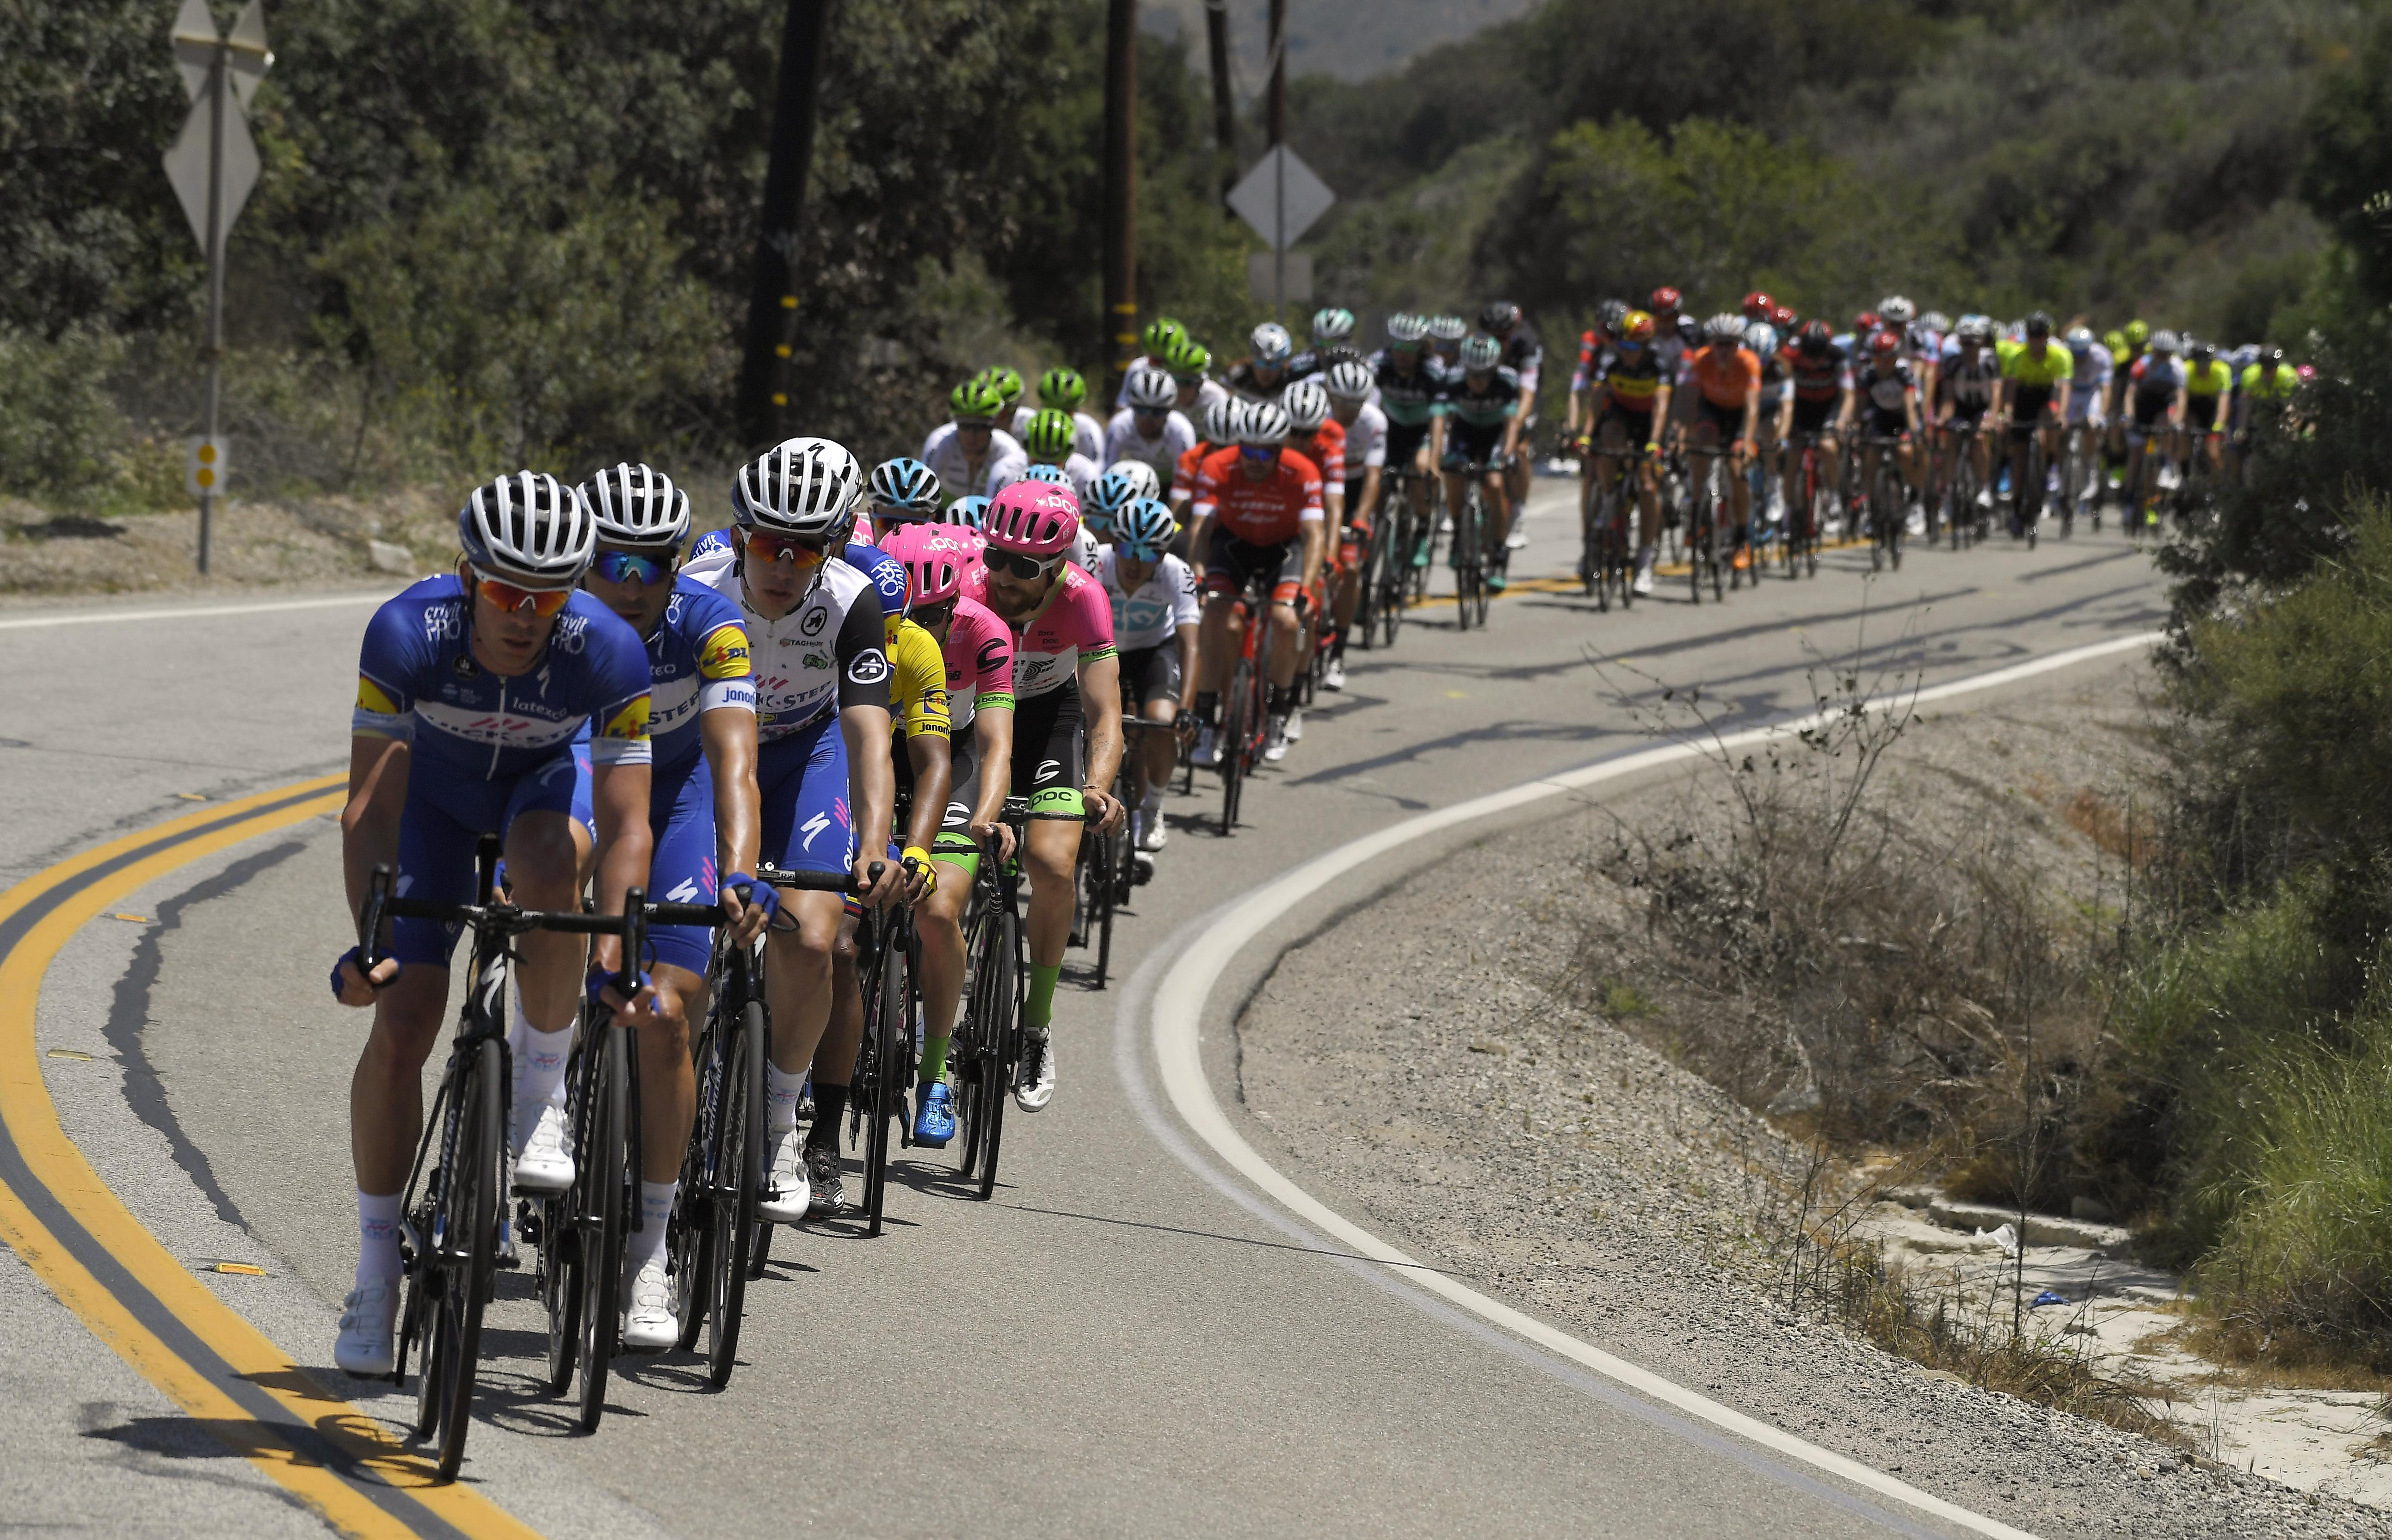 e3e675fdb13 The peloton rides during stage of the amgen cycling tour of california  monday may jpg 5172x3330